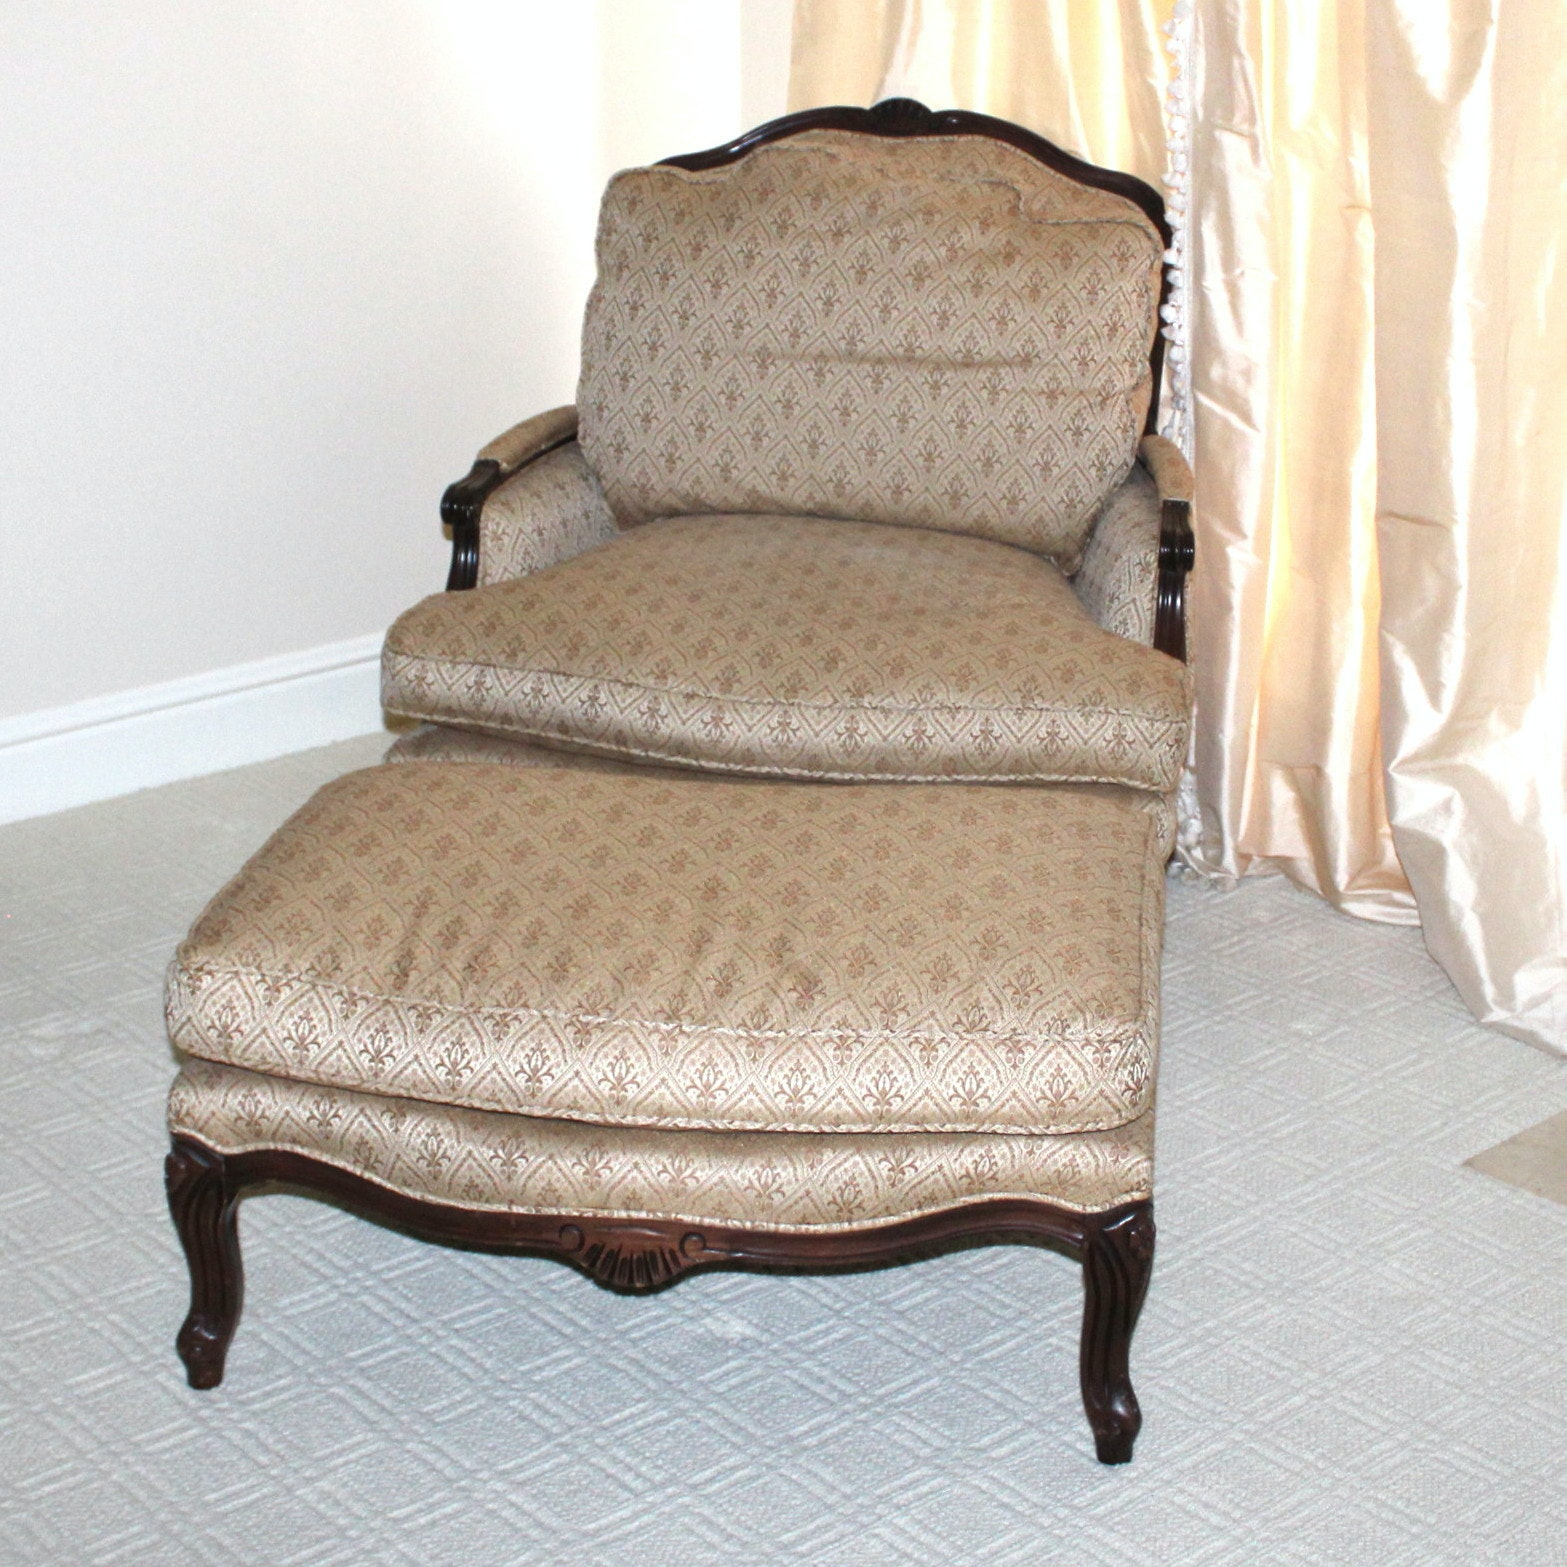 French Country Style Chair and Ottoman